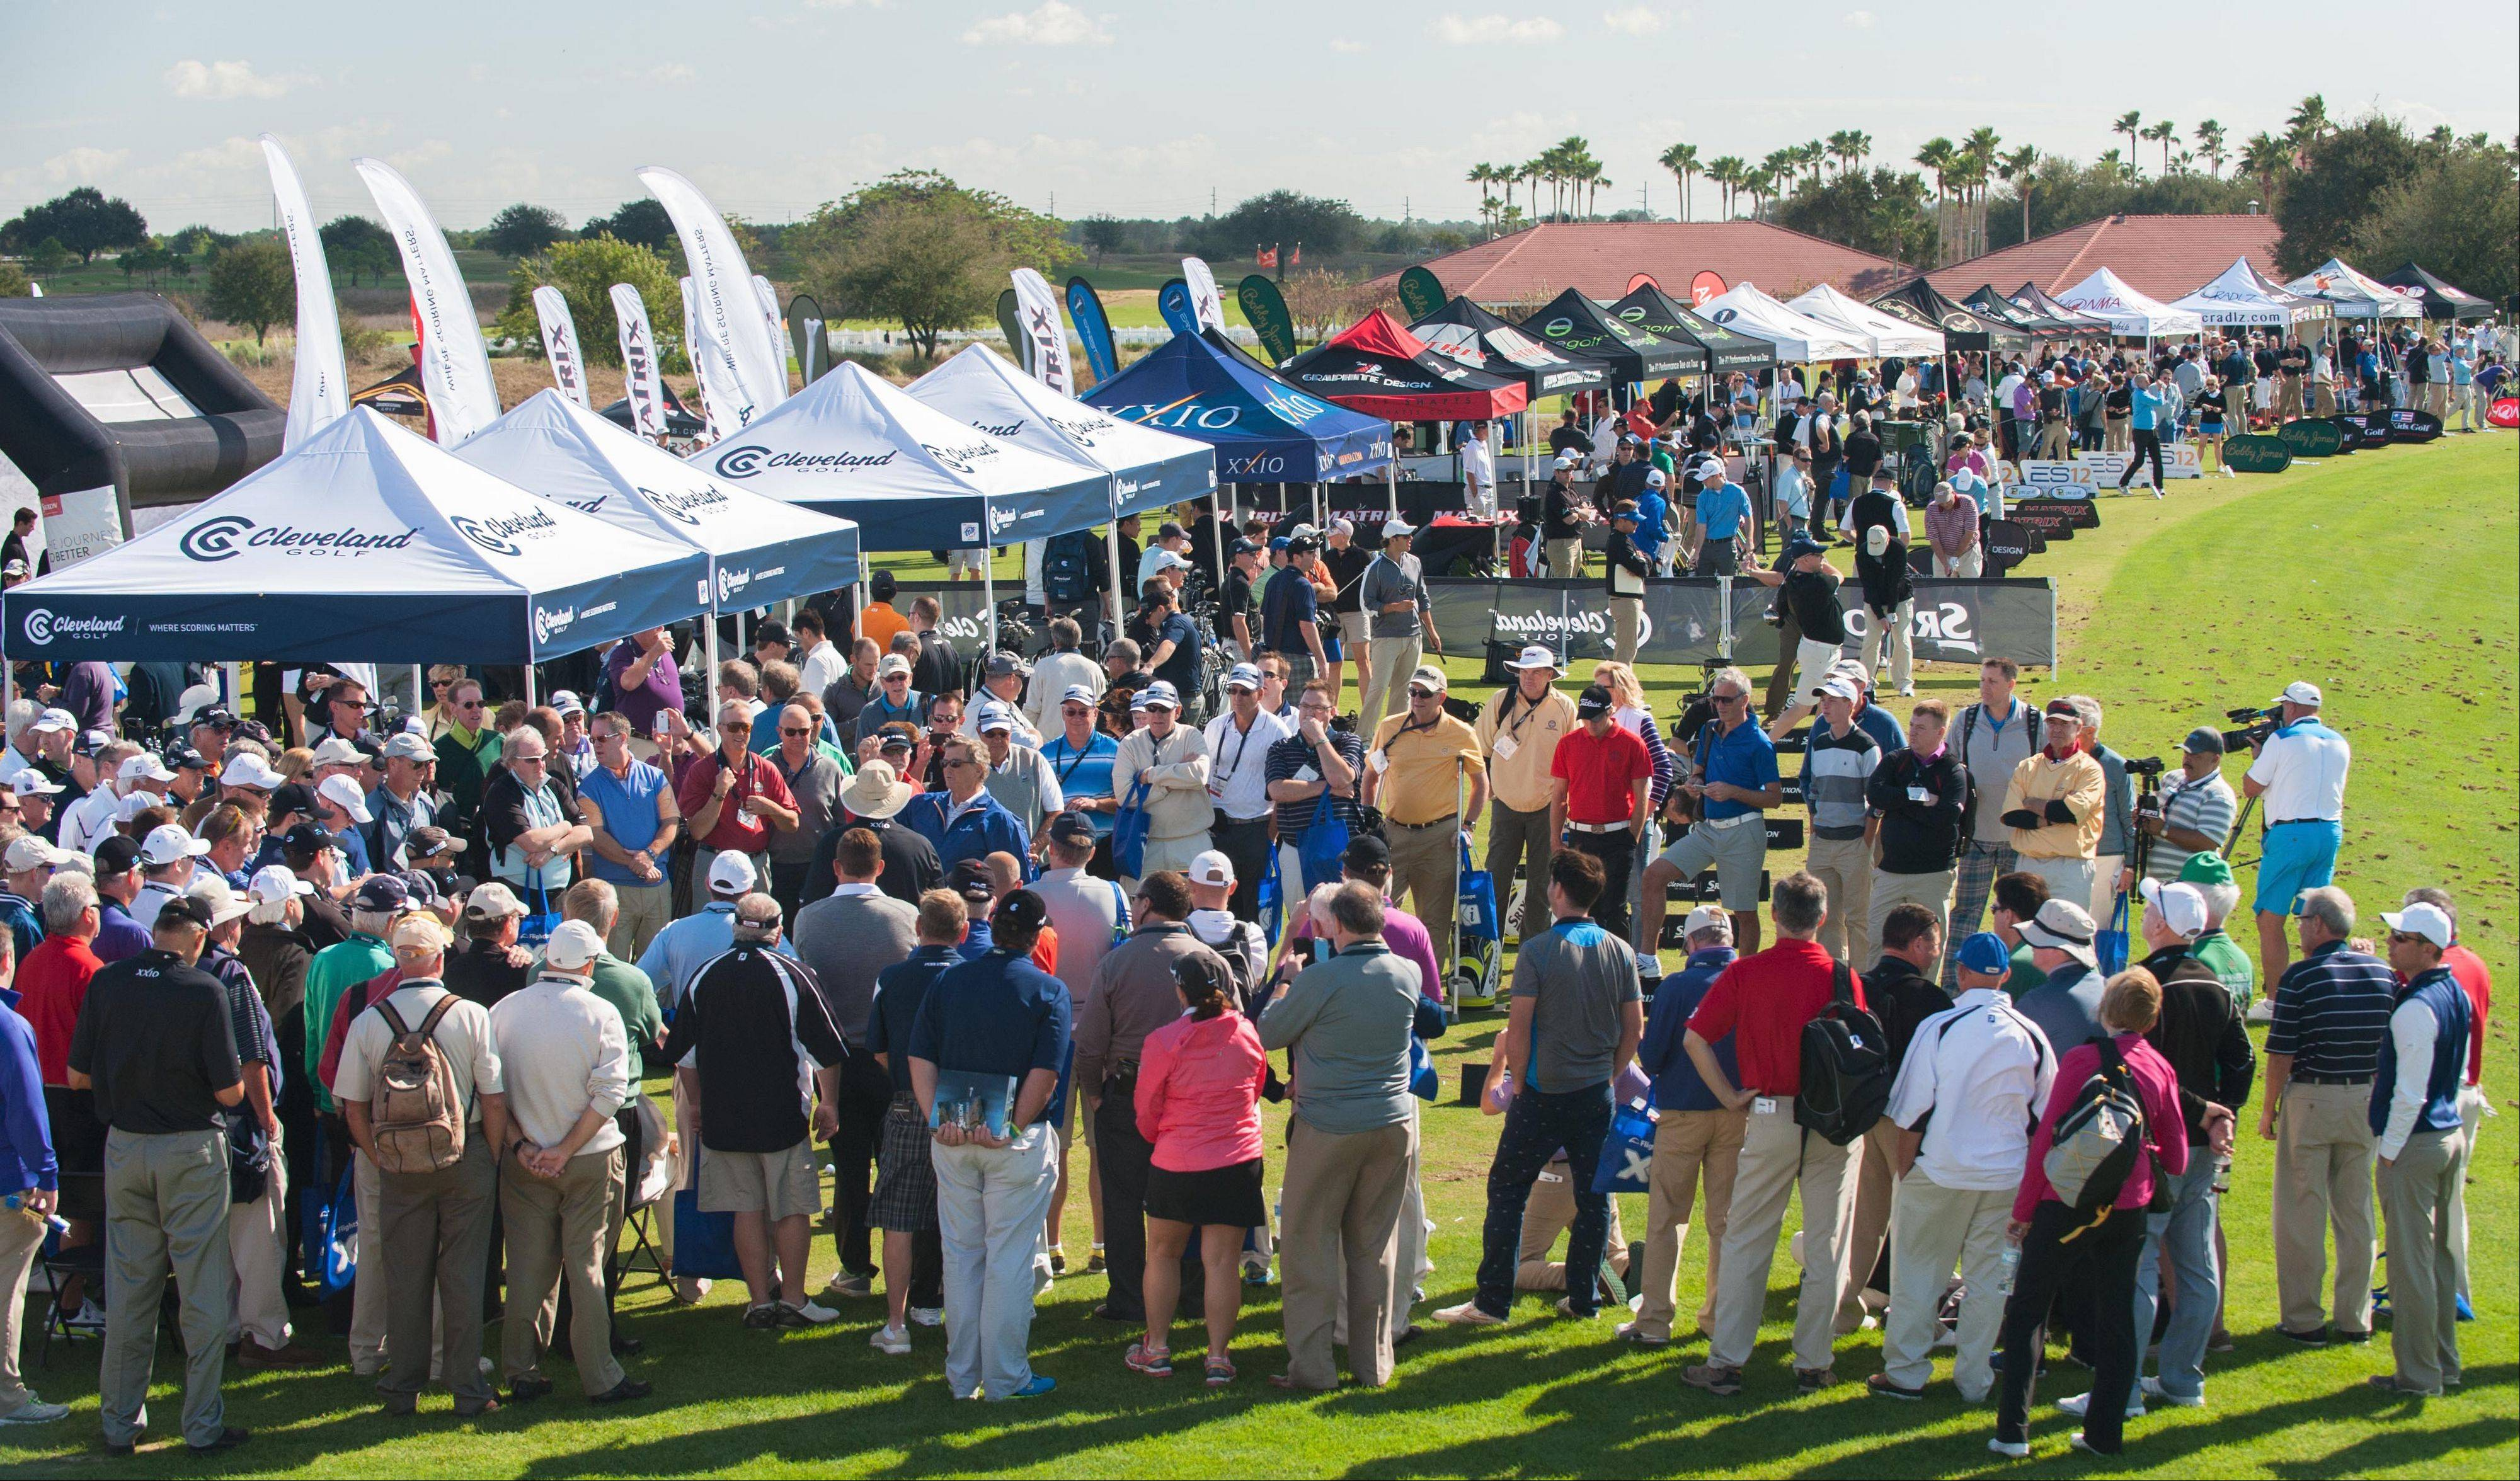 The instructional workshops drew big crowds during Demo Day at the PGA Merchandise Show this week at the Orange County National Golf Course in Winter Garden, Fla.